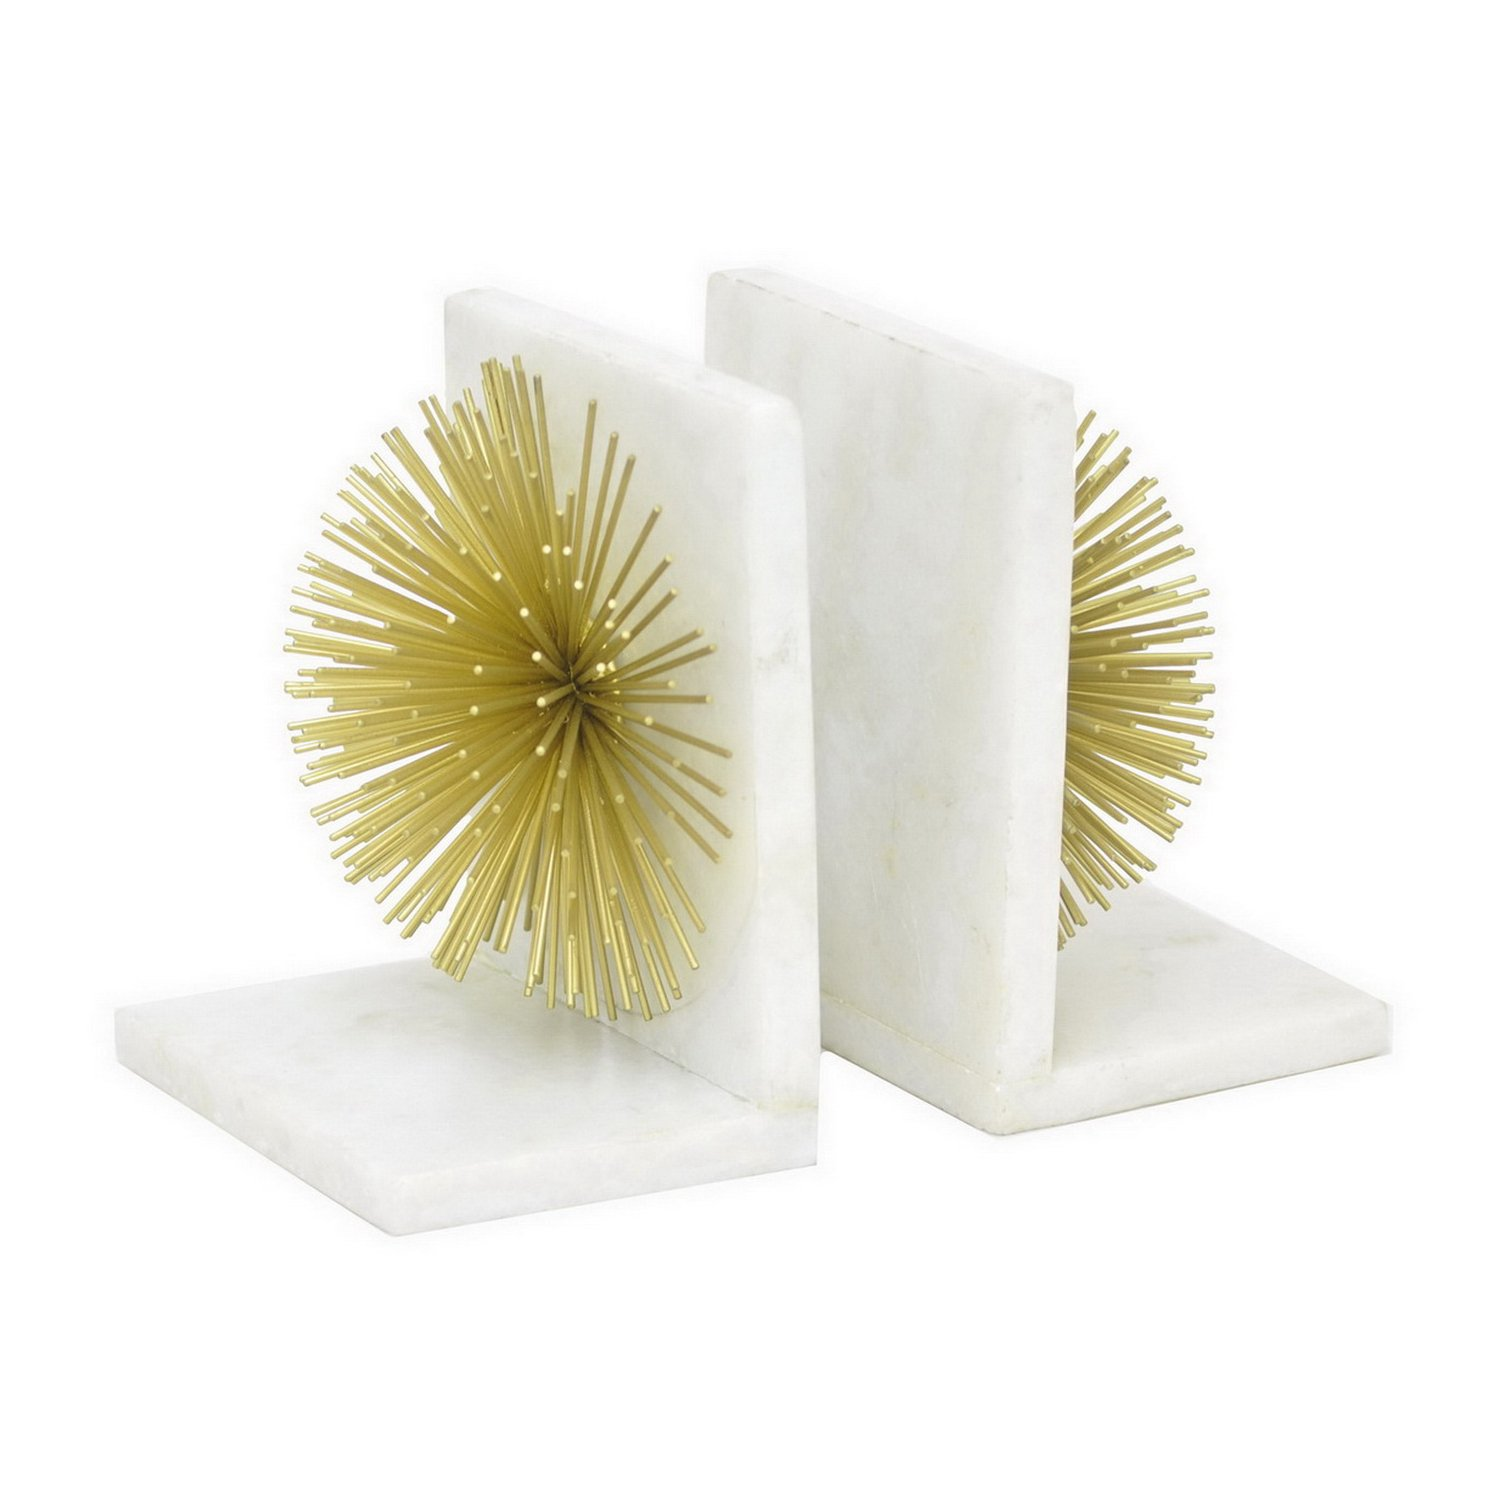 Three Hands Metal/Marble Bookends Set of 2, White by Three Hands